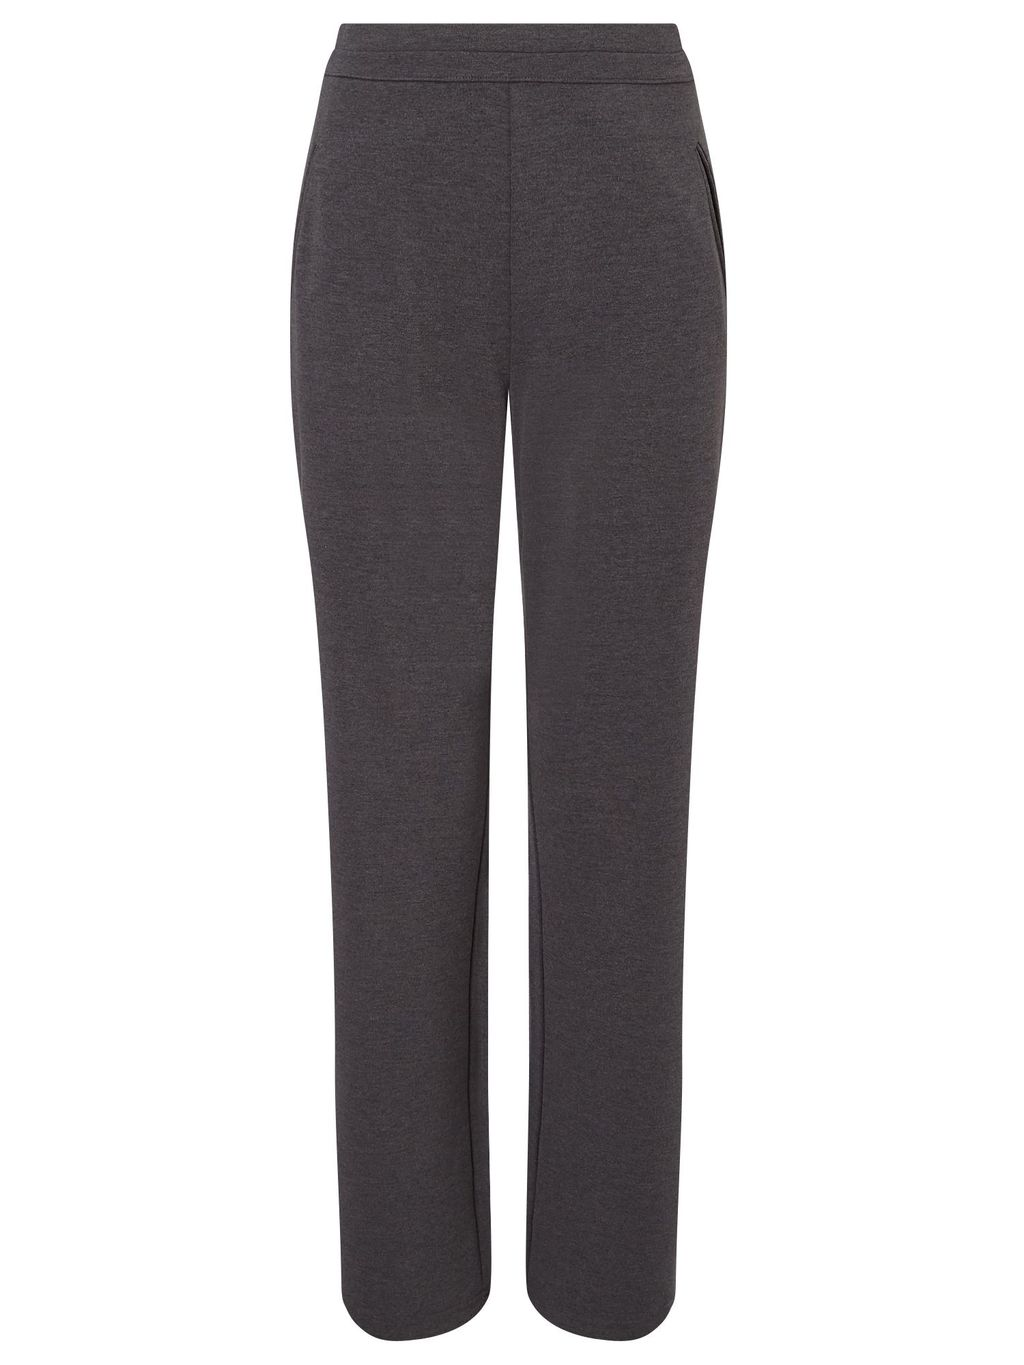 Grey Interlock Jogger Long, Grey - length: standard; waist: mid/regular rise; predominant colour: mid grey; occasions: casual; fibres: polyester/polyamide - 100%; fit: straight leg; pattern type: fabric; texture group: other - light to midweight; style: standard; pattern: marl; season: s/s 2016; wardrobe: basic